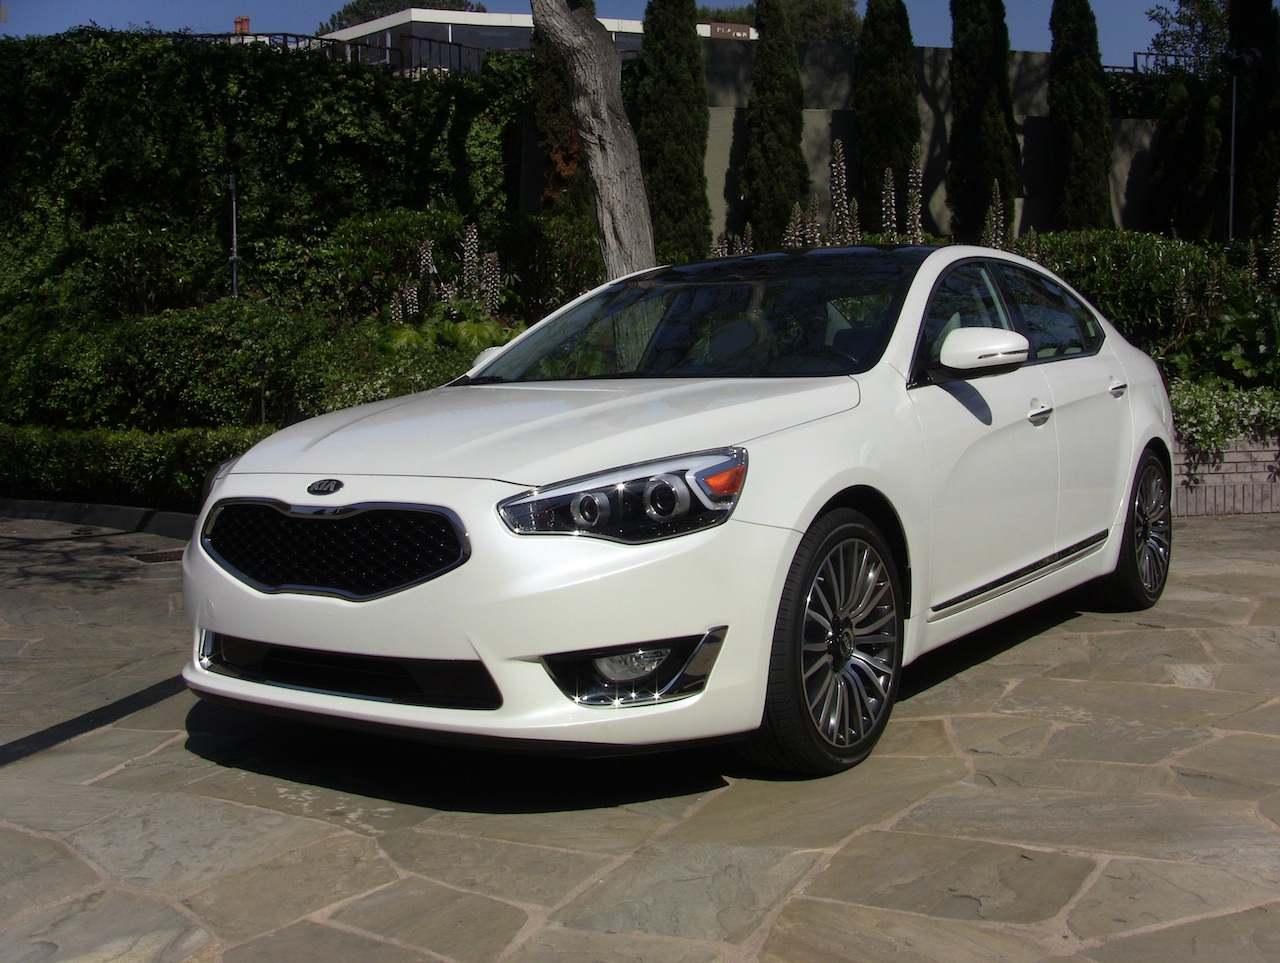 2015 Kia Cadenza 40 Car Hd Wallpaper